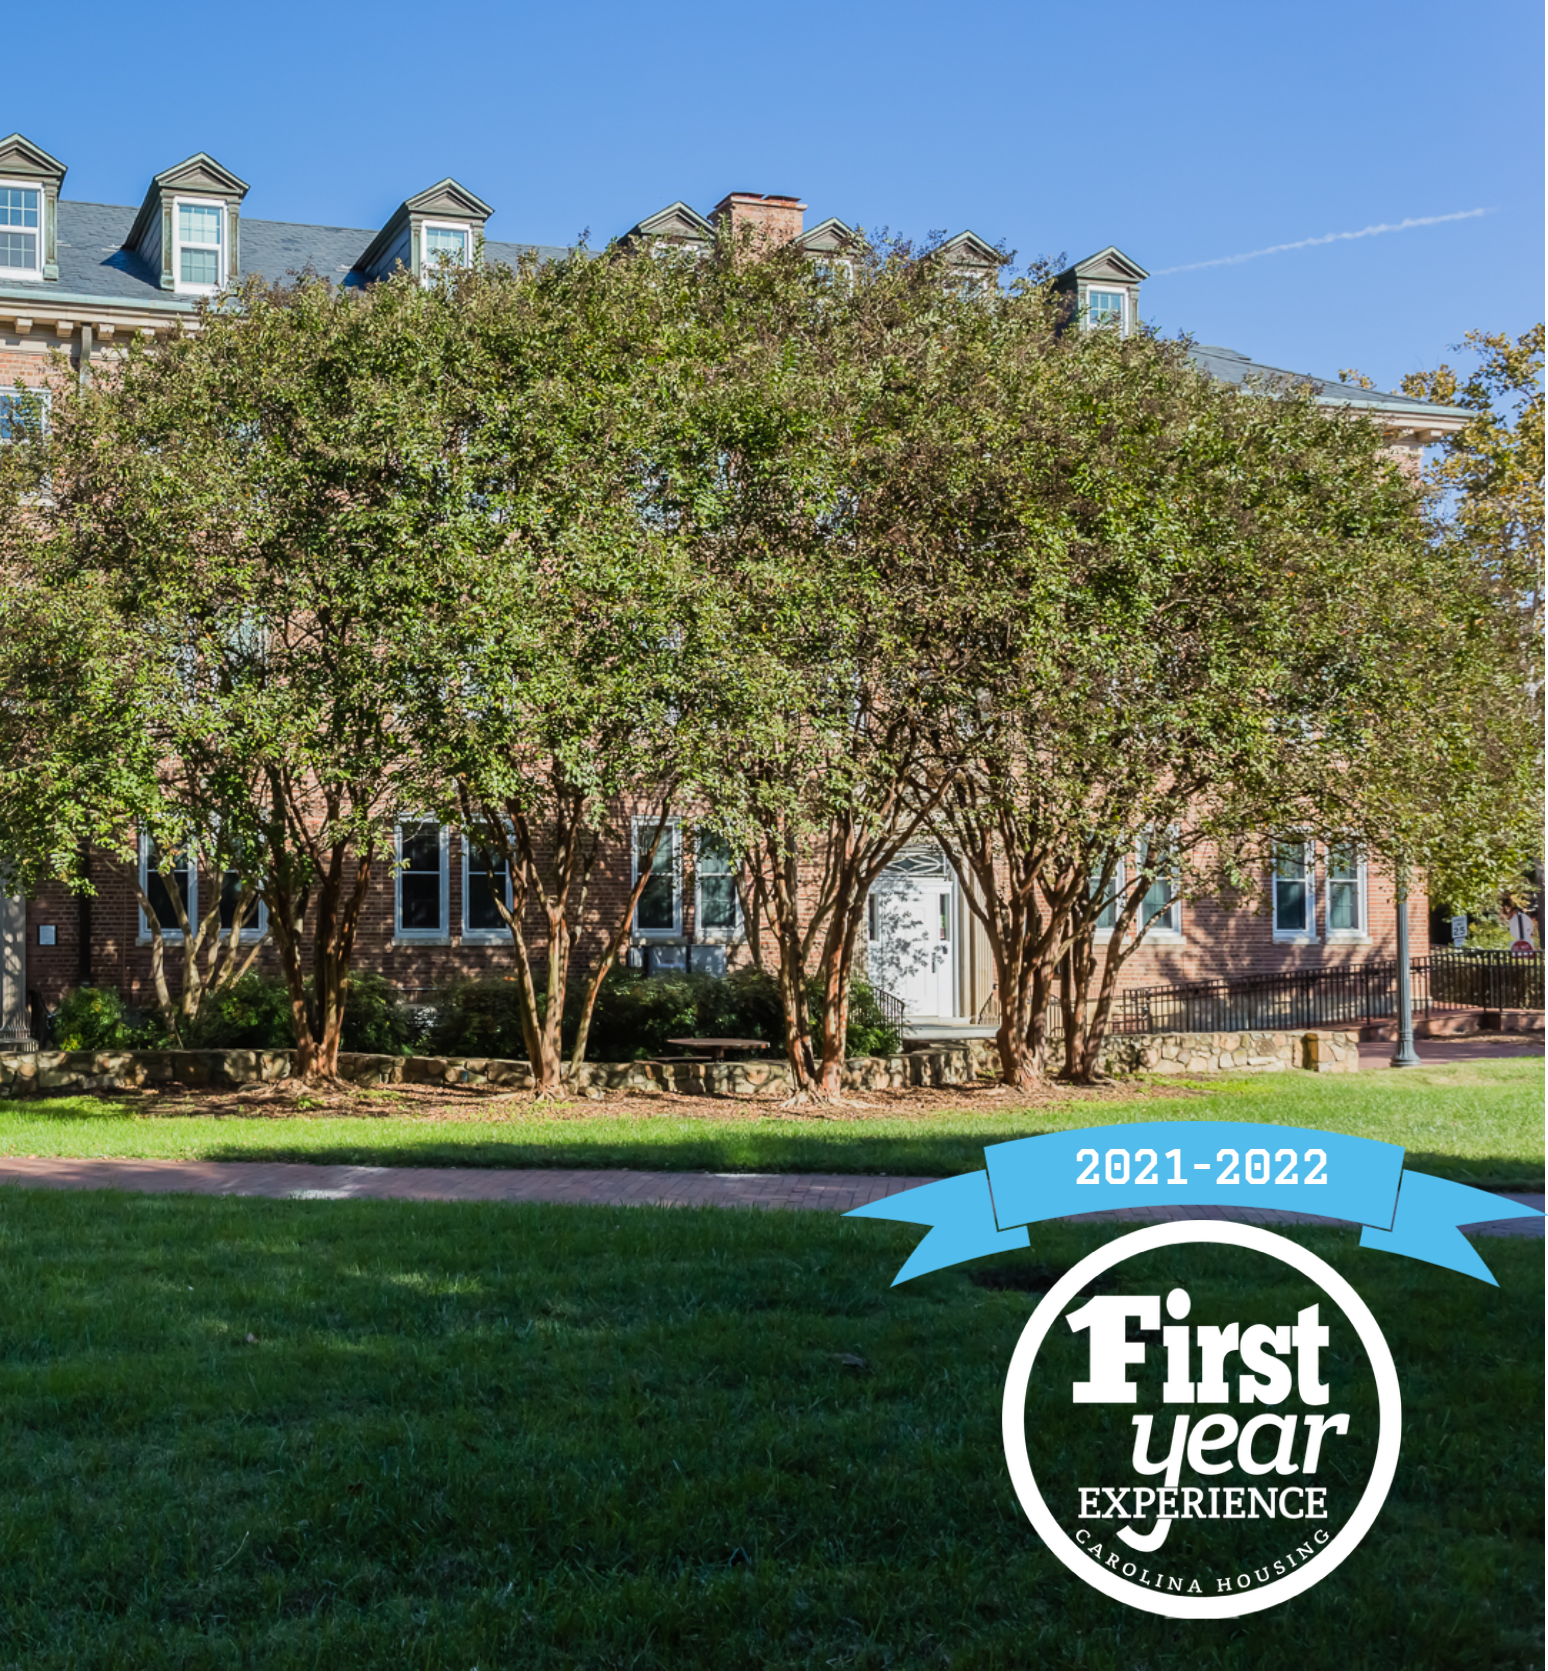 Mangum residence hall with the First Year Experience logo in the right corner.